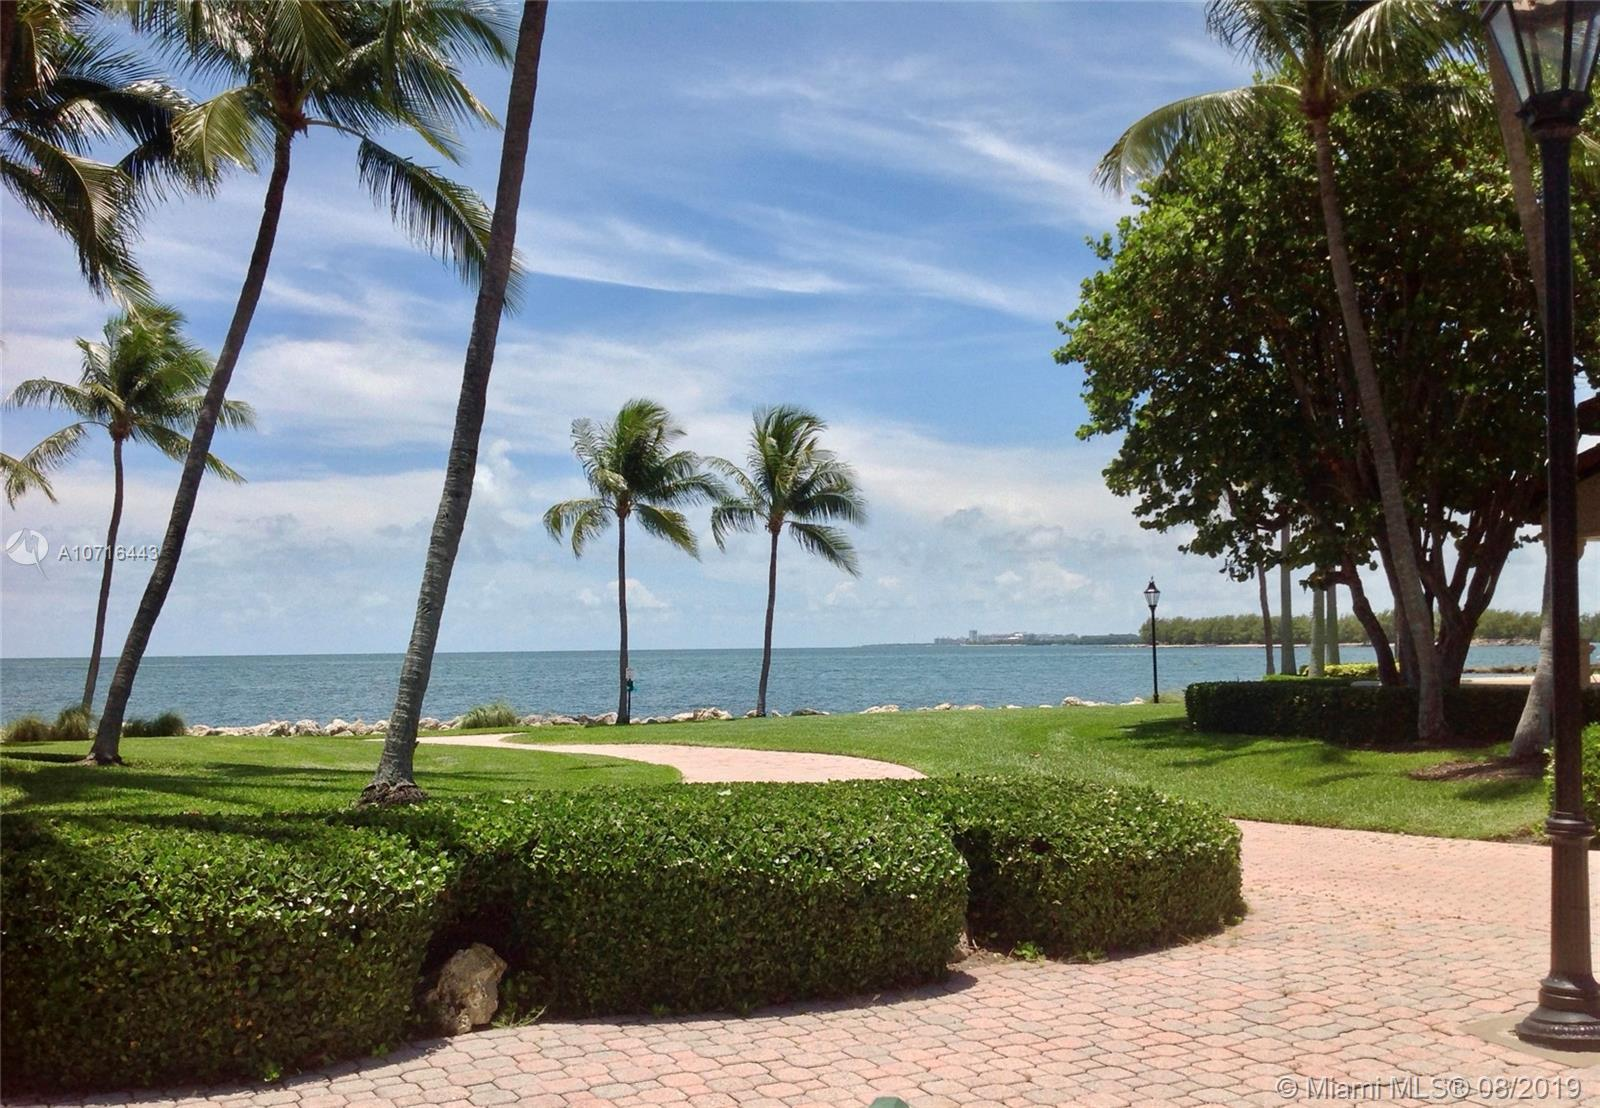 Seaside beautiful direct ocean views. Fully Renovated modern  Pied e terre, One bedroom seaside villa . Ground floor, walking distance to club house and beach club . Private patio.